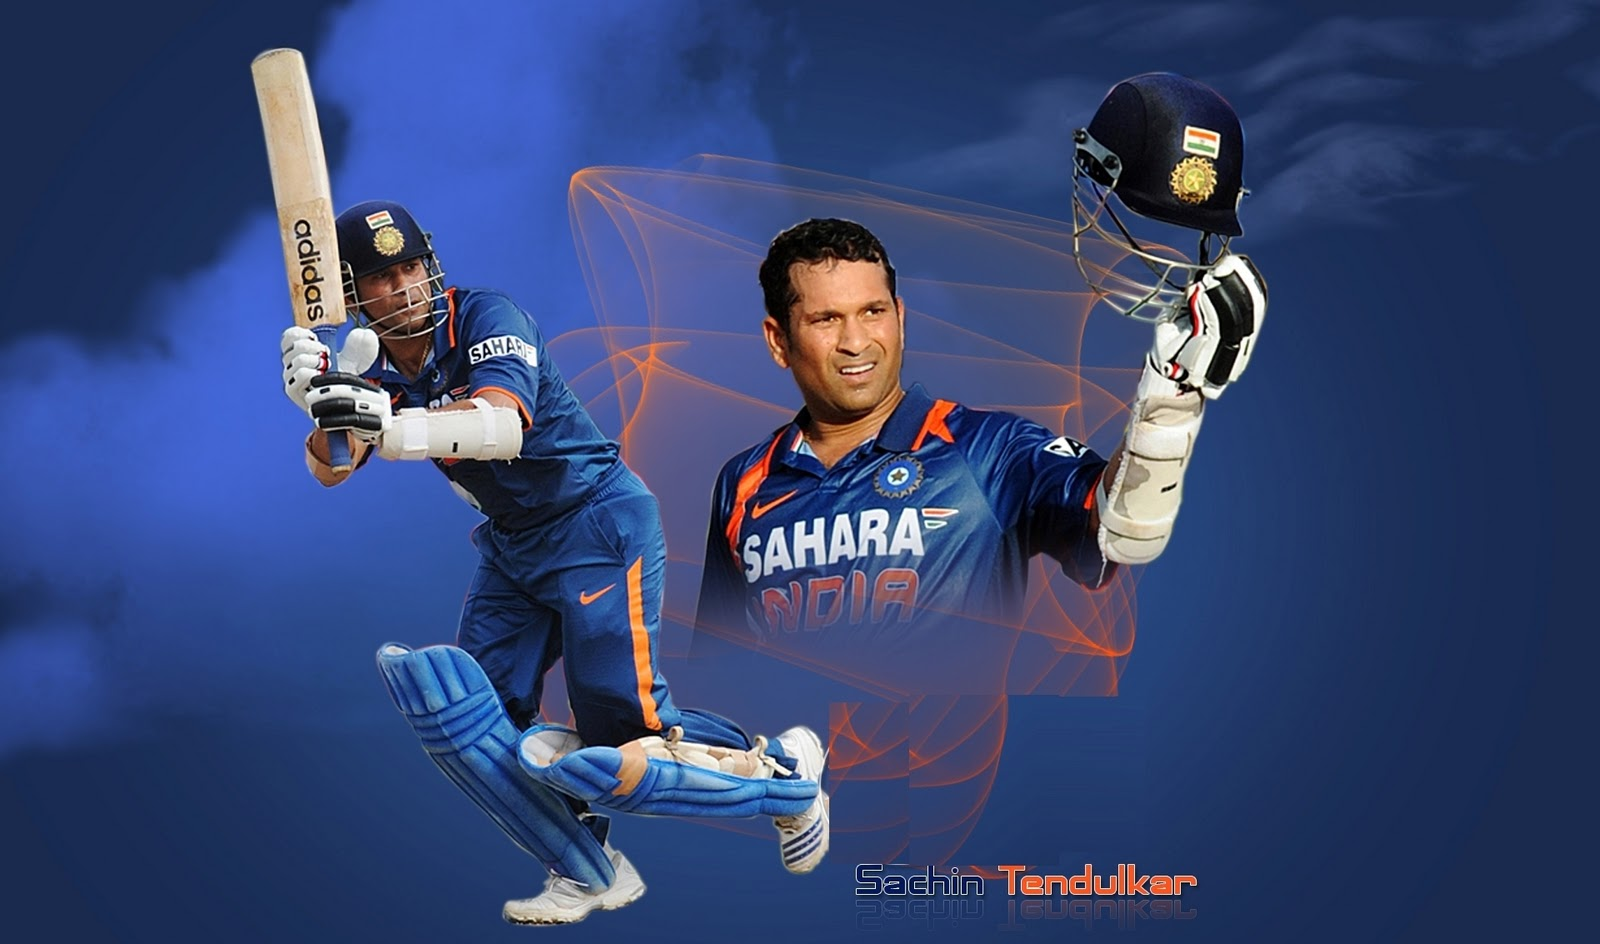 ... score and cricket rankings: Greatest quotes on Sachin Tendulkar